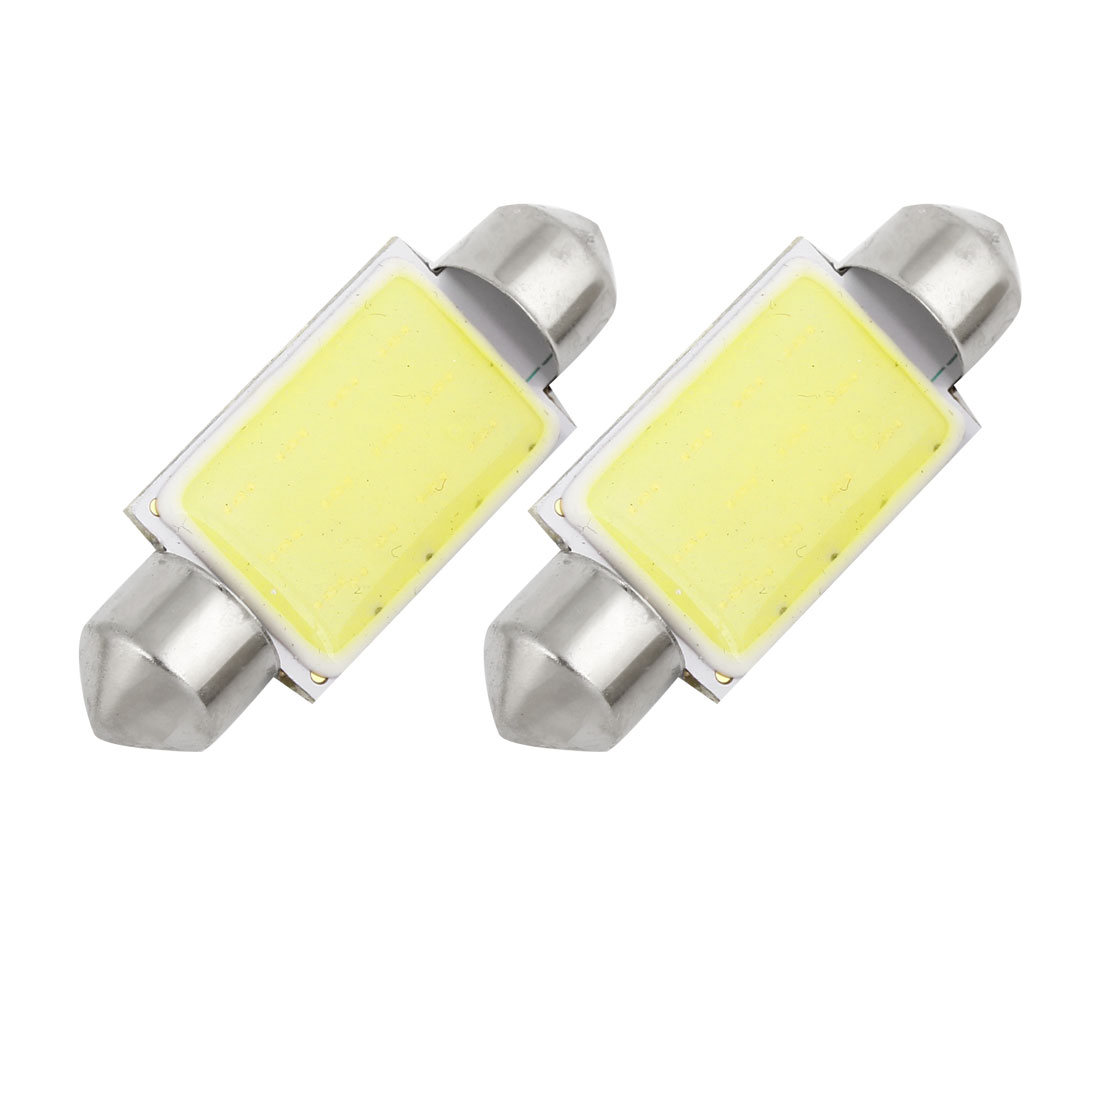 2 Pcs Auto Car 39mm Length White 12 COB Festoon Dome Light Bulb Lamp Internal